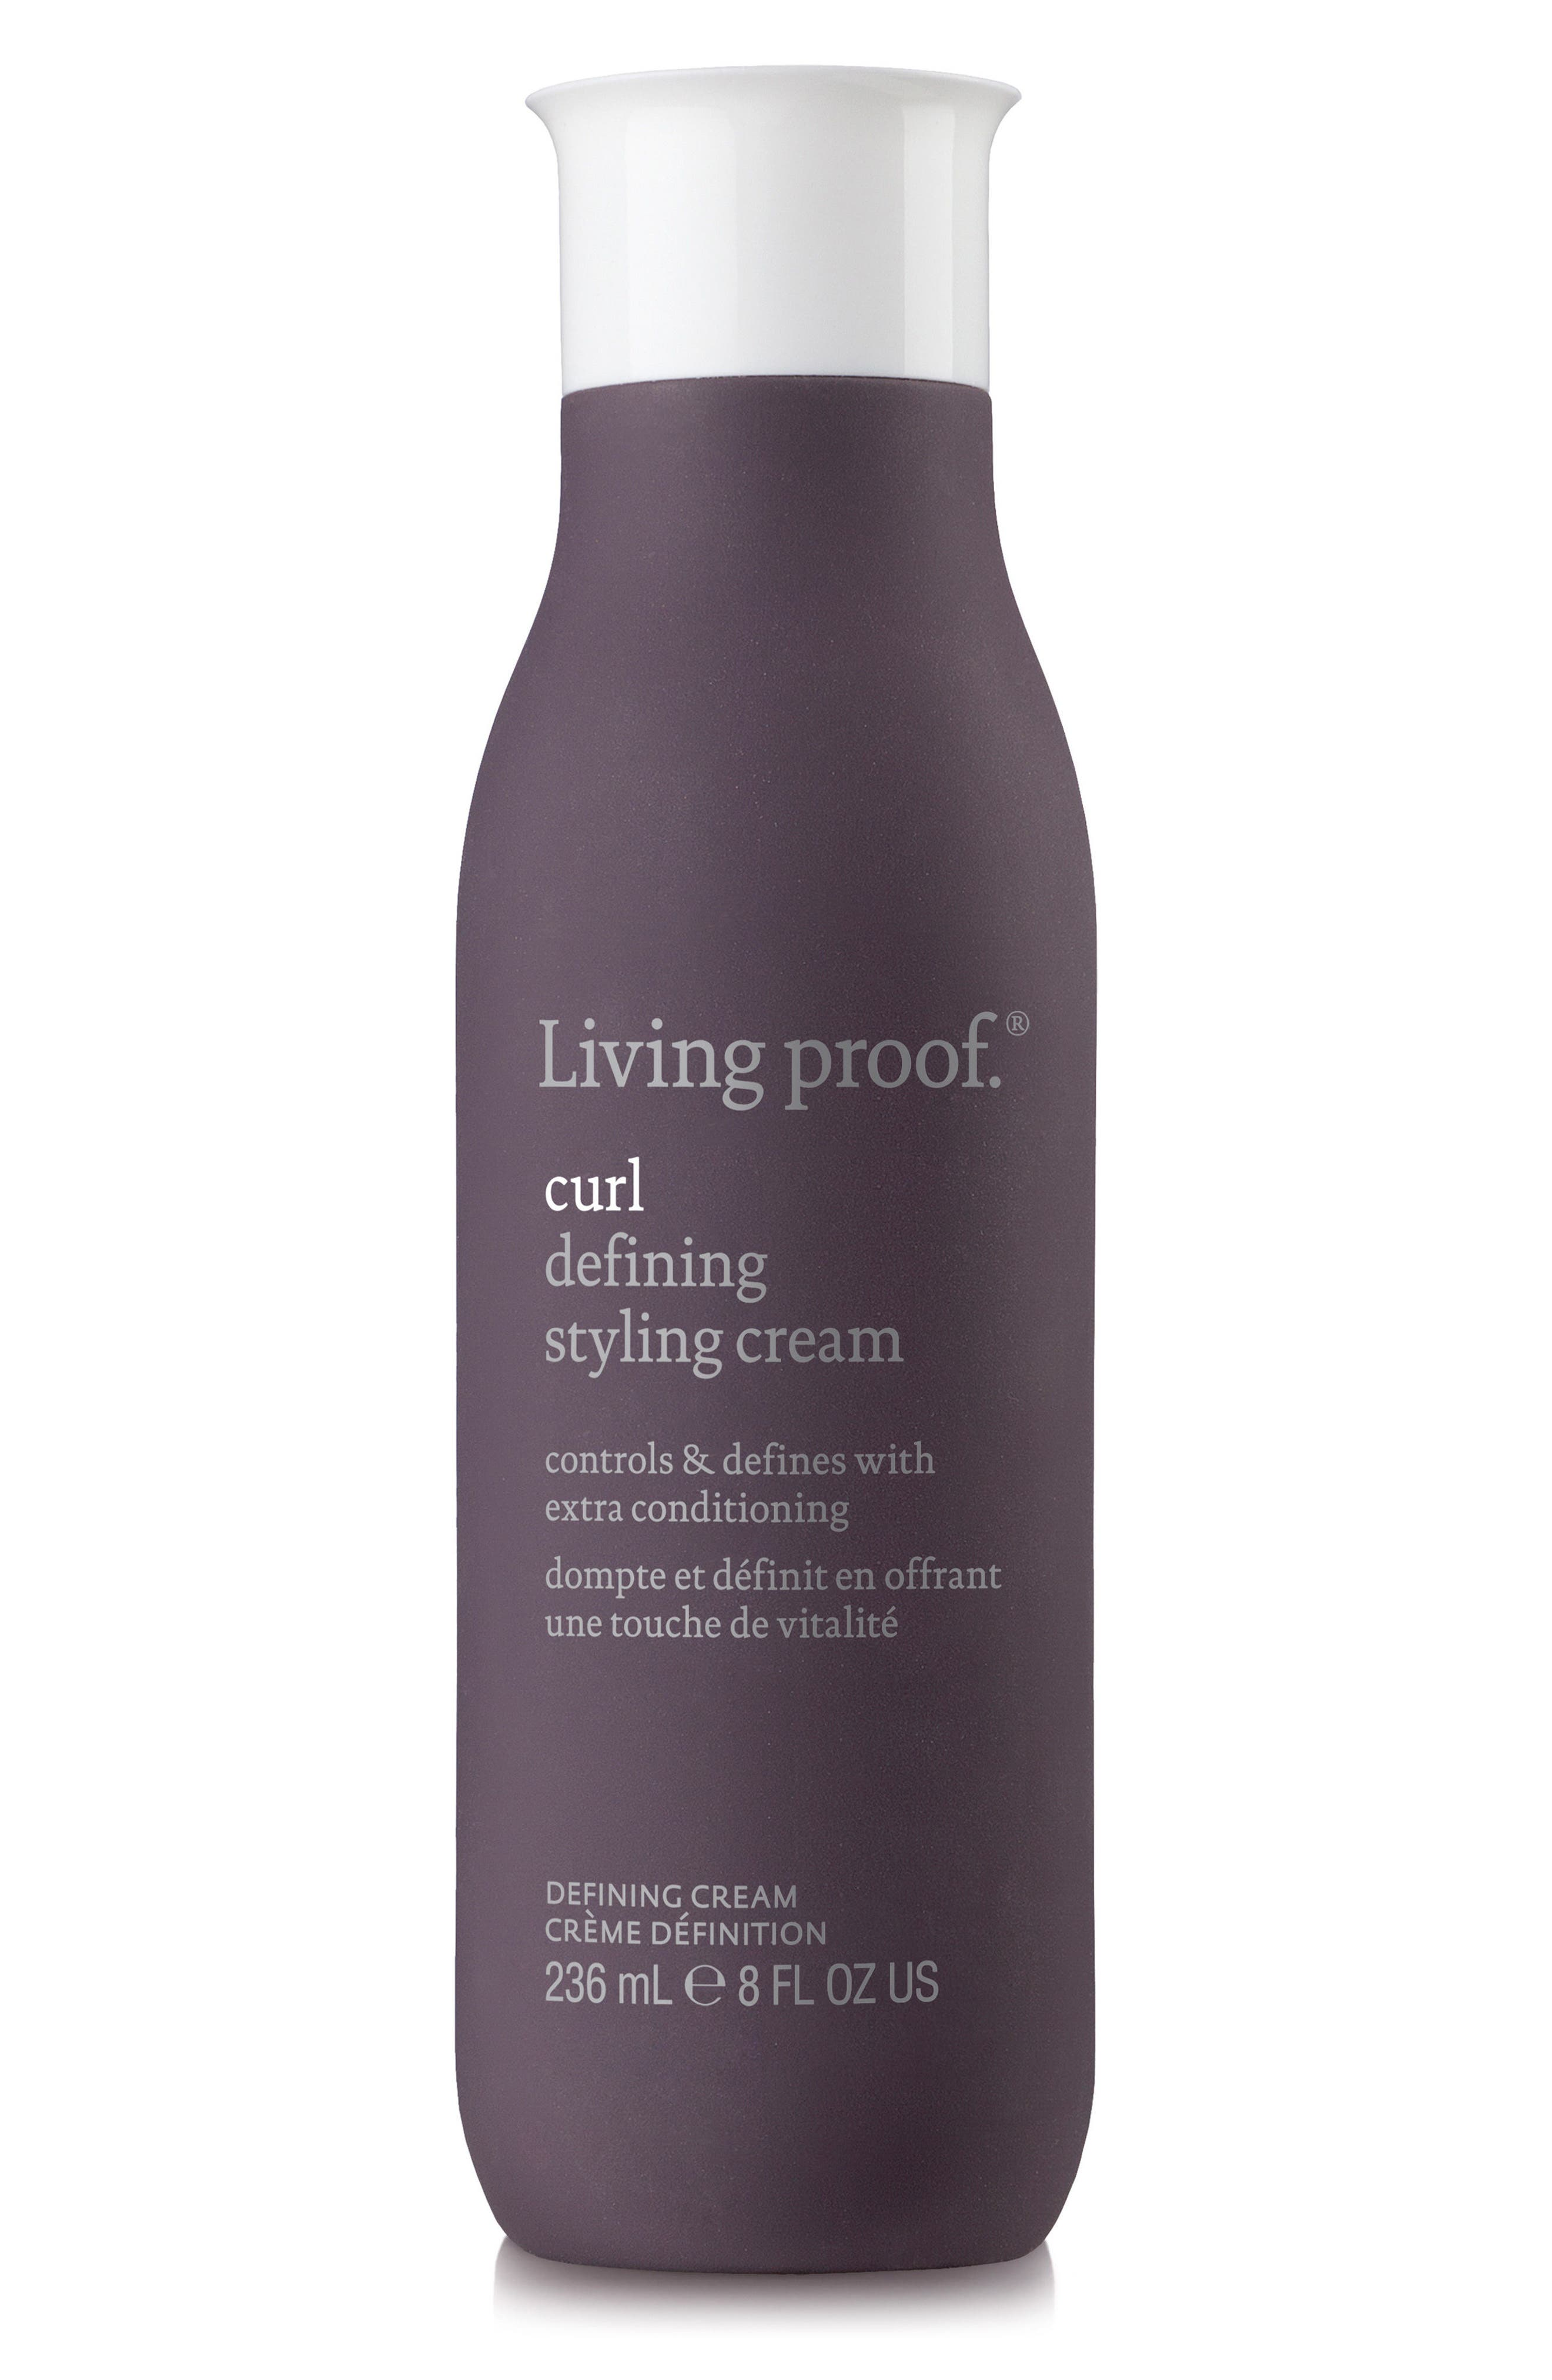 Main Image - Living proof® Curl Defining Styling Cream